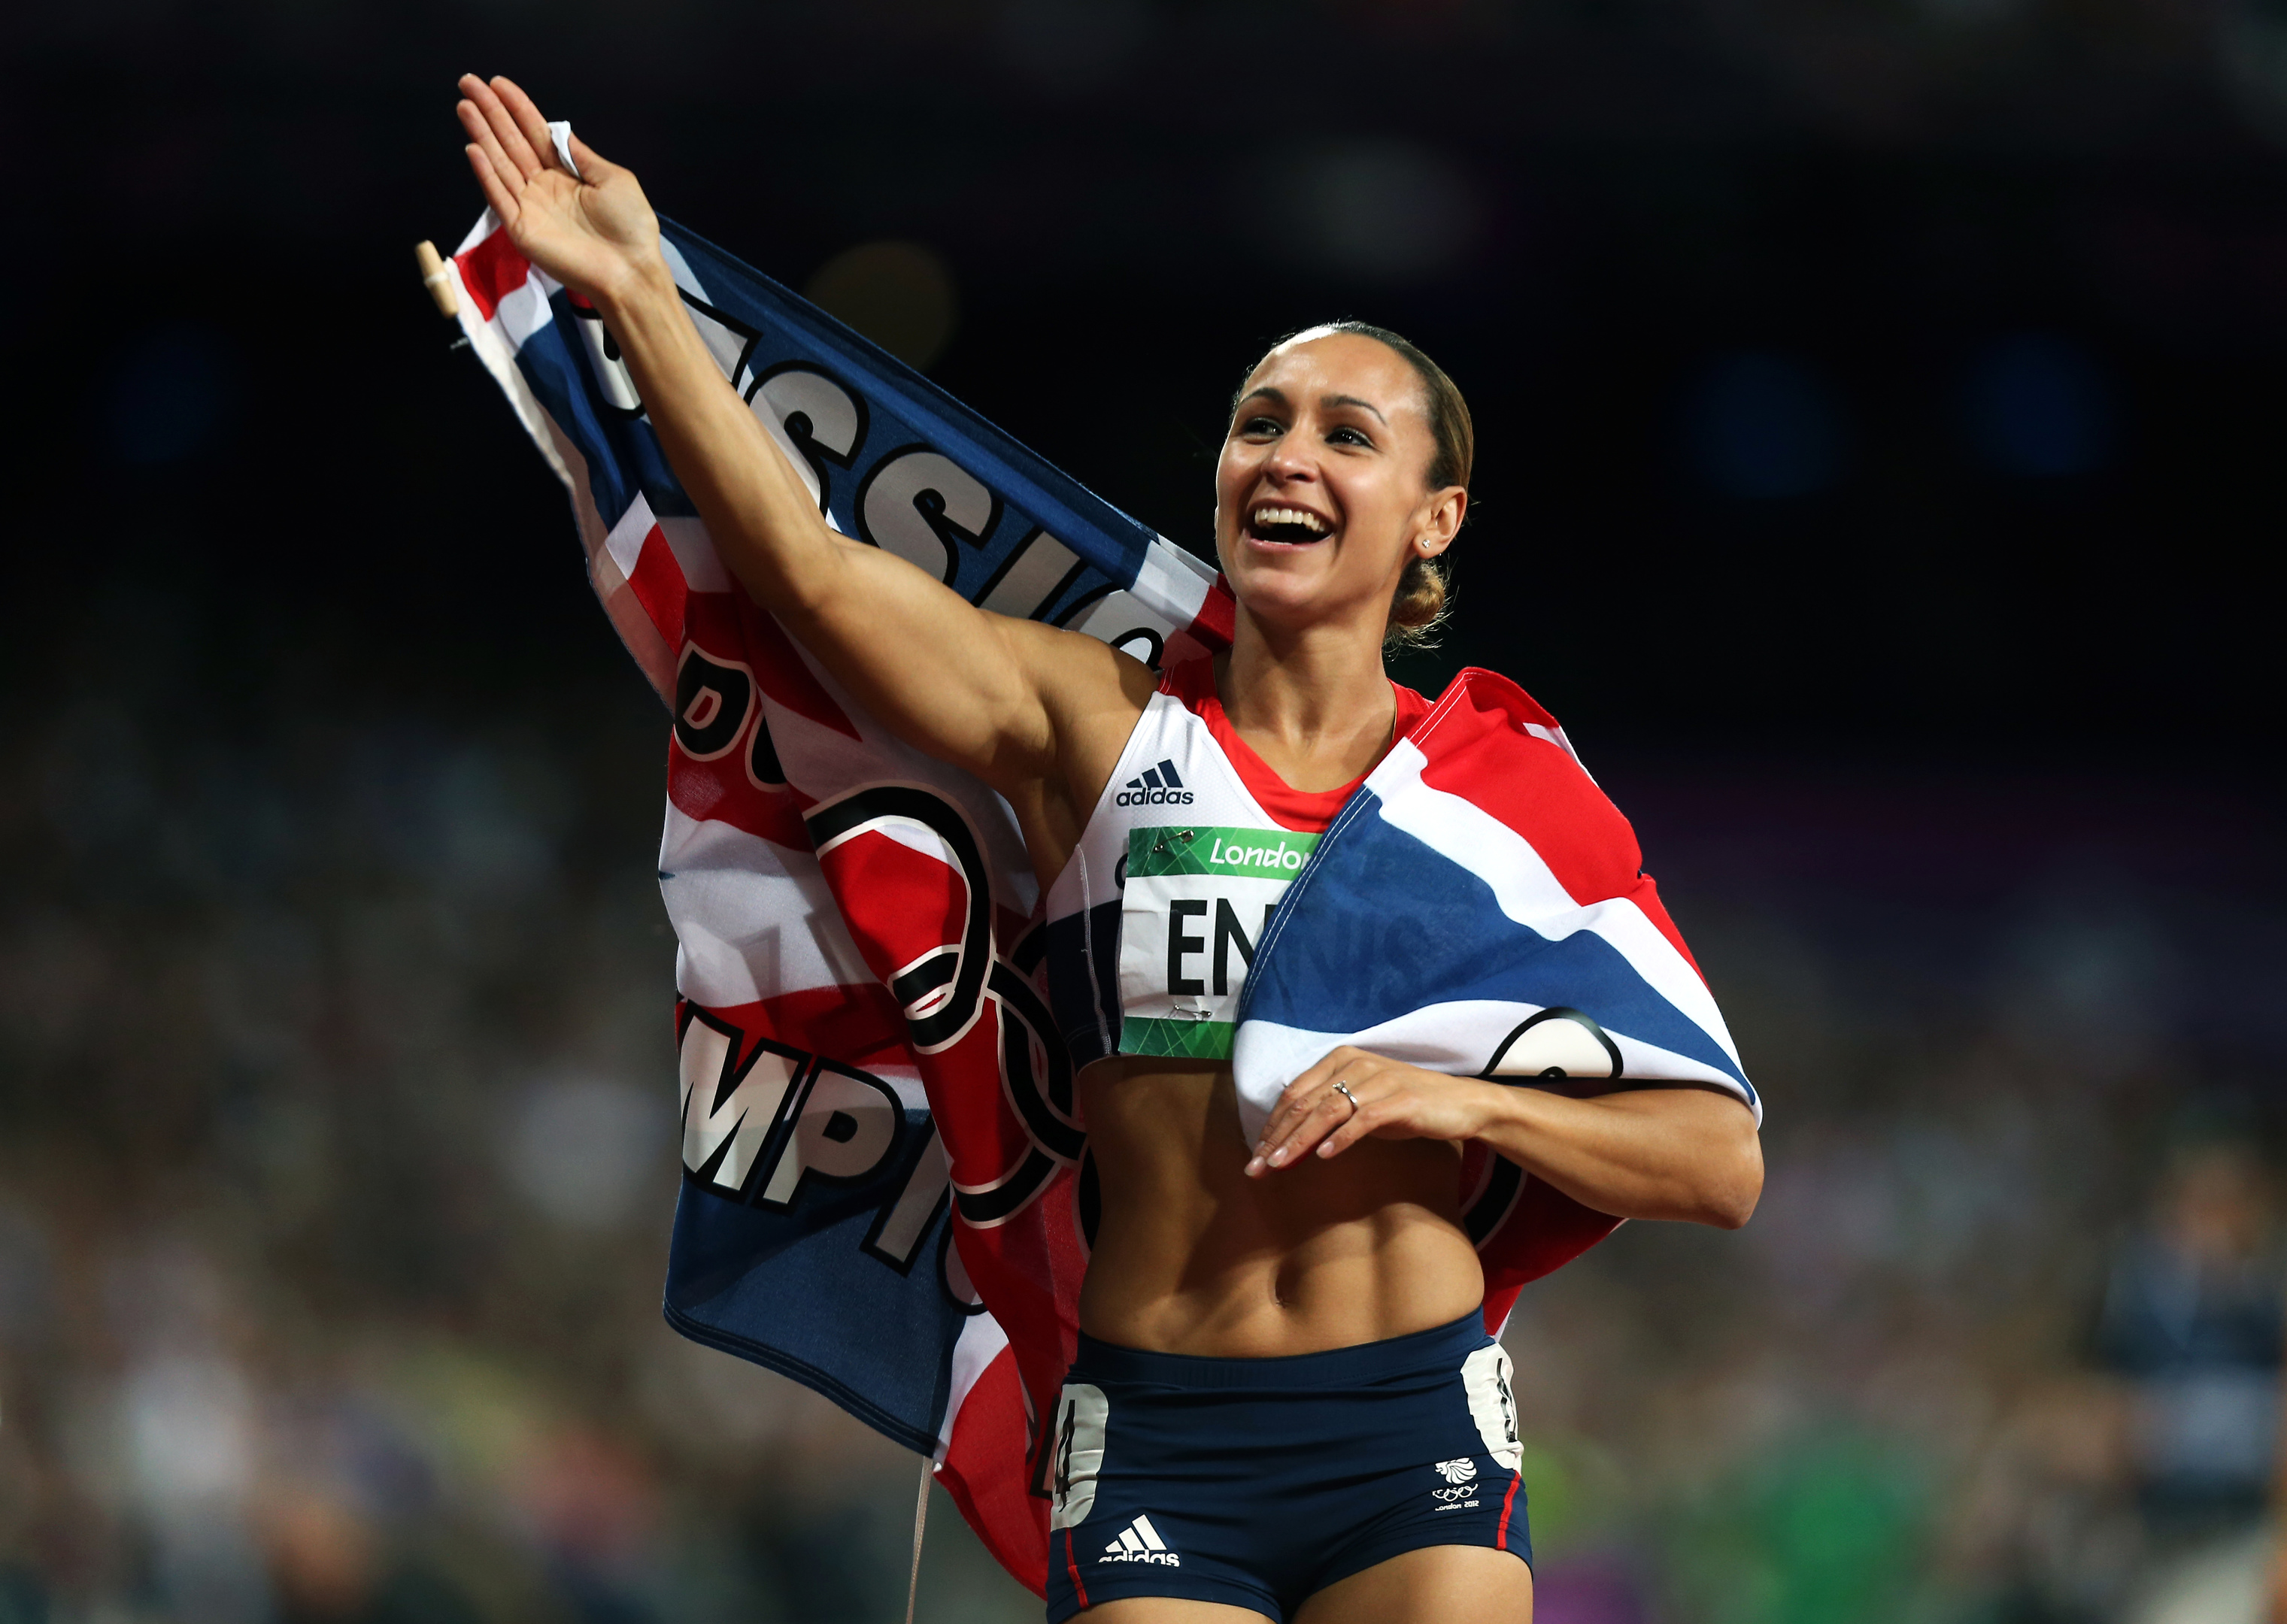 Jessica Ennis celebrates her victory on 'Super Saturday' (David Davies / PA Archive)